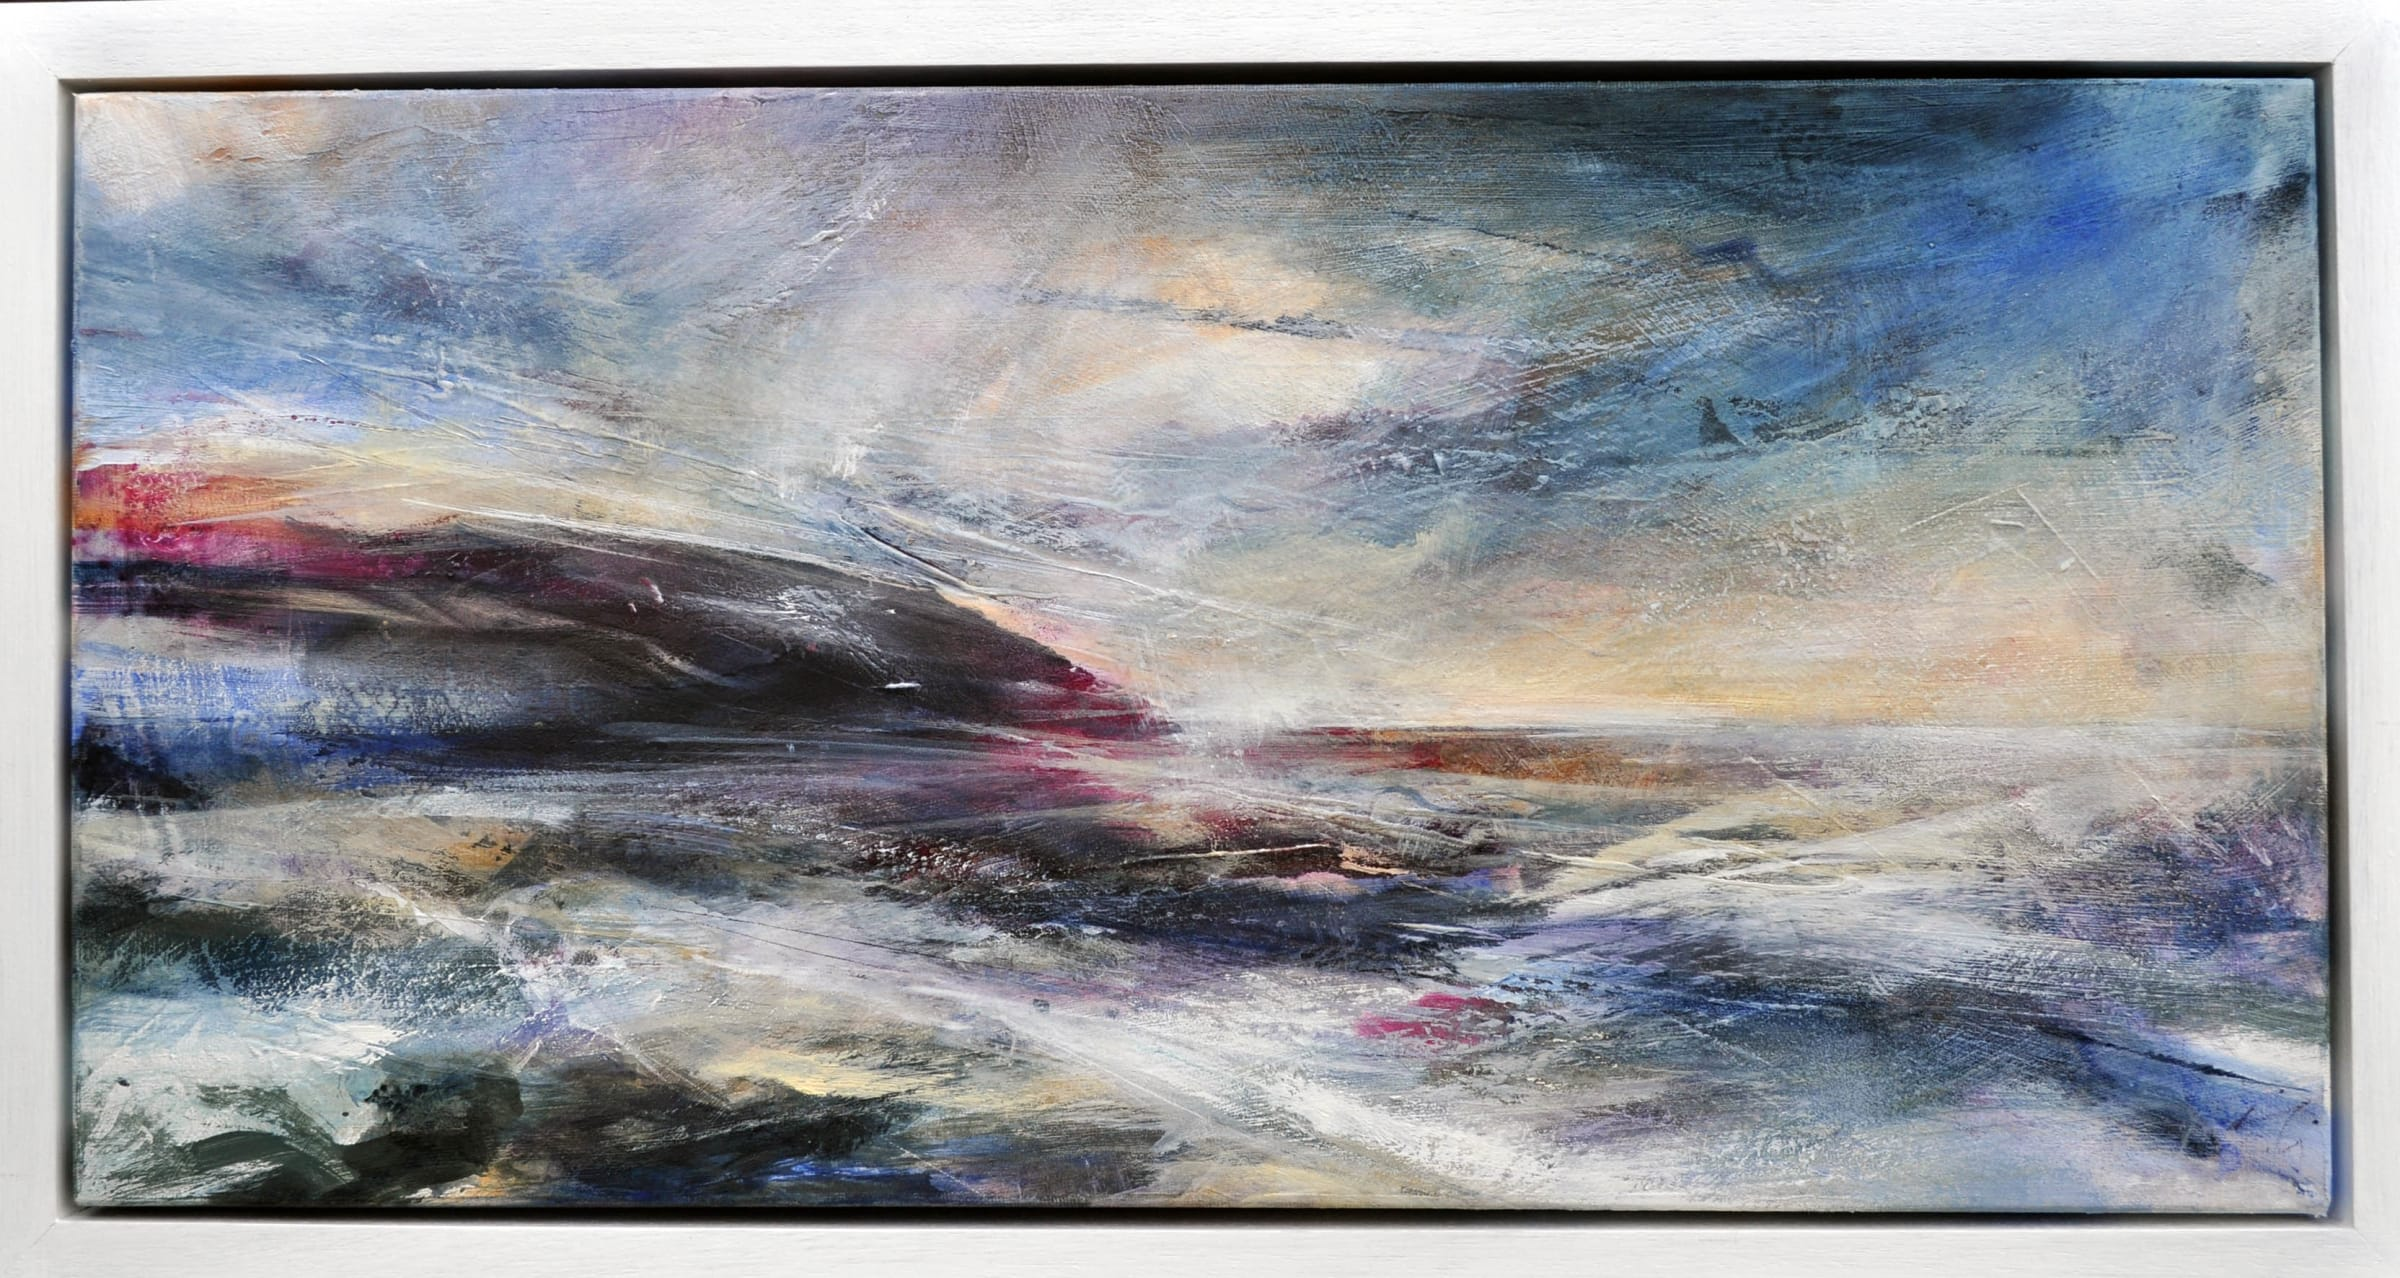 """<span class=""""link fancybox-details-link""""><a href=""""/artists/90-freya-horsley/works/5961-freya-horsley-starting-out-2018/"""">View Detail Page</a></span><div class=""""artist""""><strong>Freya Horsley</strong></div> b. 1979 <div class=""""title""""><em>Starting Out</em>, 2018</div> <div class=""""medium"""">mixed media on canvas</div> <div class=""""dimensions"""">35 x 65 cm framed<br /> 13 3/4 x 25 5/8 inches</div><div class=""""price"""">£750.00</div><div class=""""copyright_line"""">Copyright The Artist</div>"""